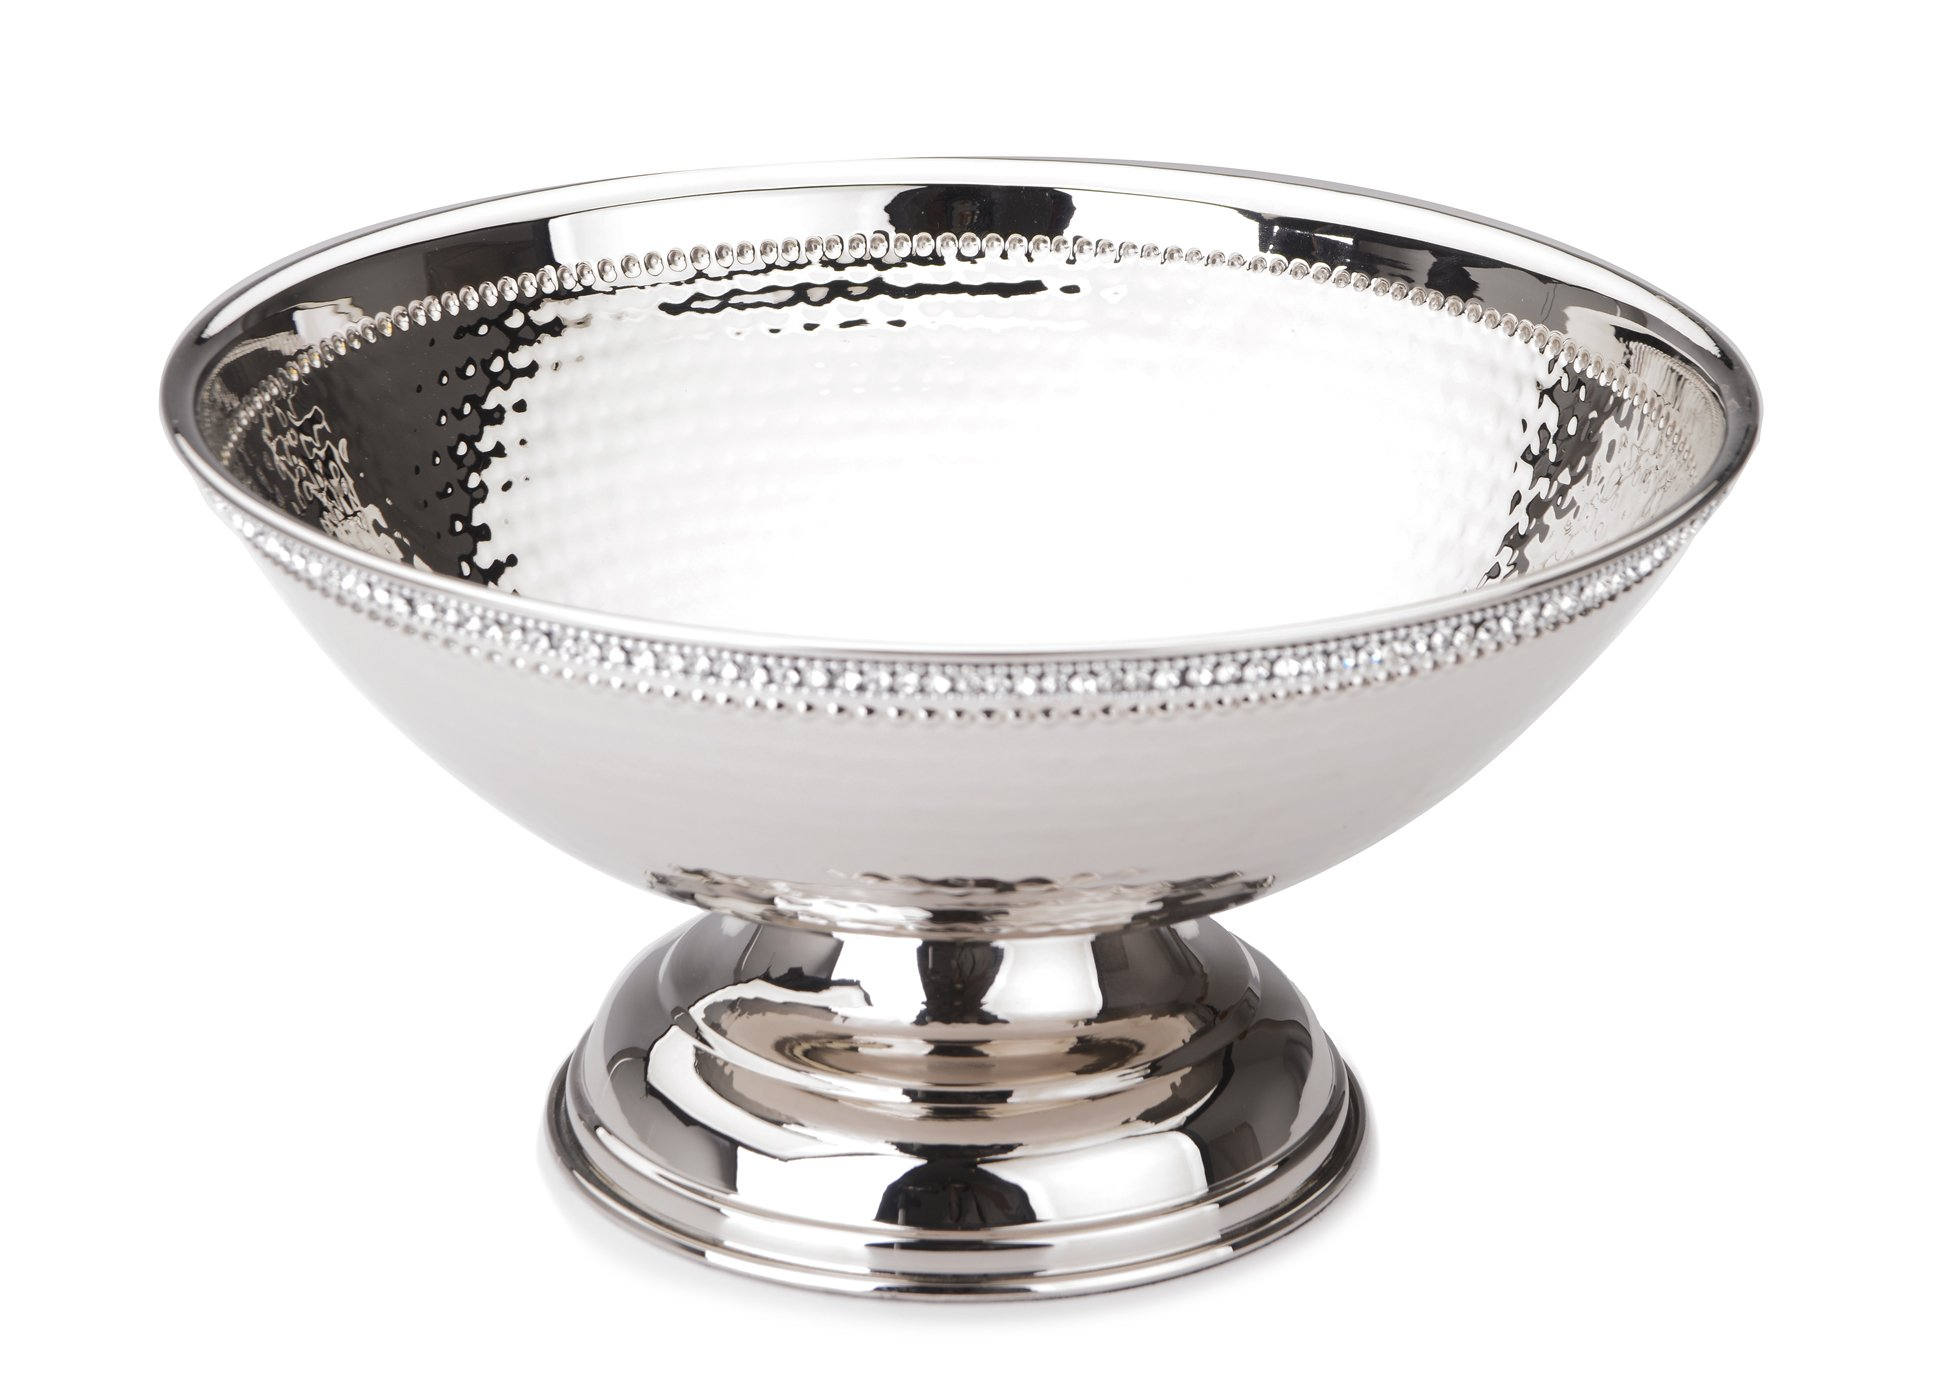 Classic Touch SDB130 Hammered Stainless Steel Footed Salad Bowl, Trimmed with Exquisite Diamonds